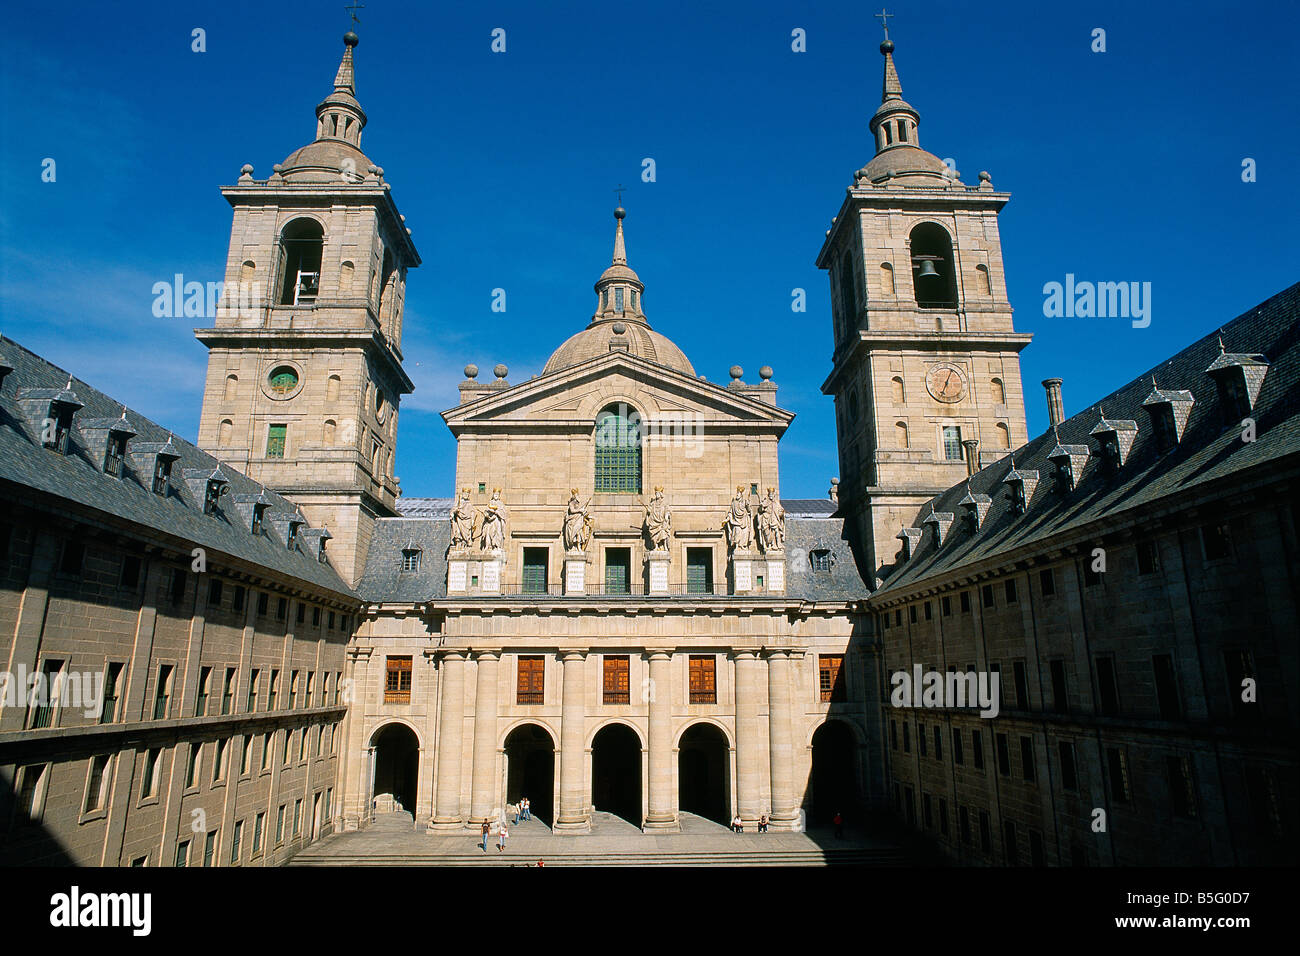 Spain - Madrid neighbourhood - El Escorial - Royal Monastery - San Lorenzo El Real - Court of the Kings Stock Photo